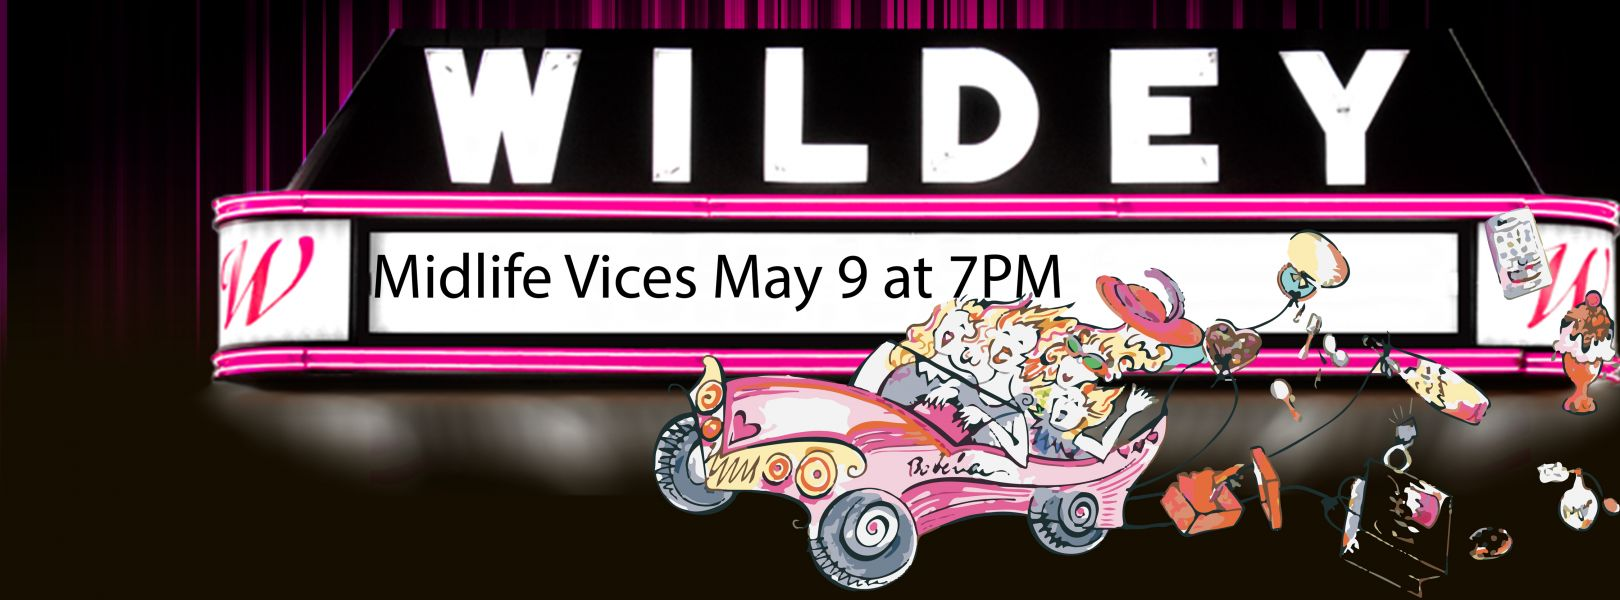 Wildey Theatre Marketing Marquee Image of Midlife Vices